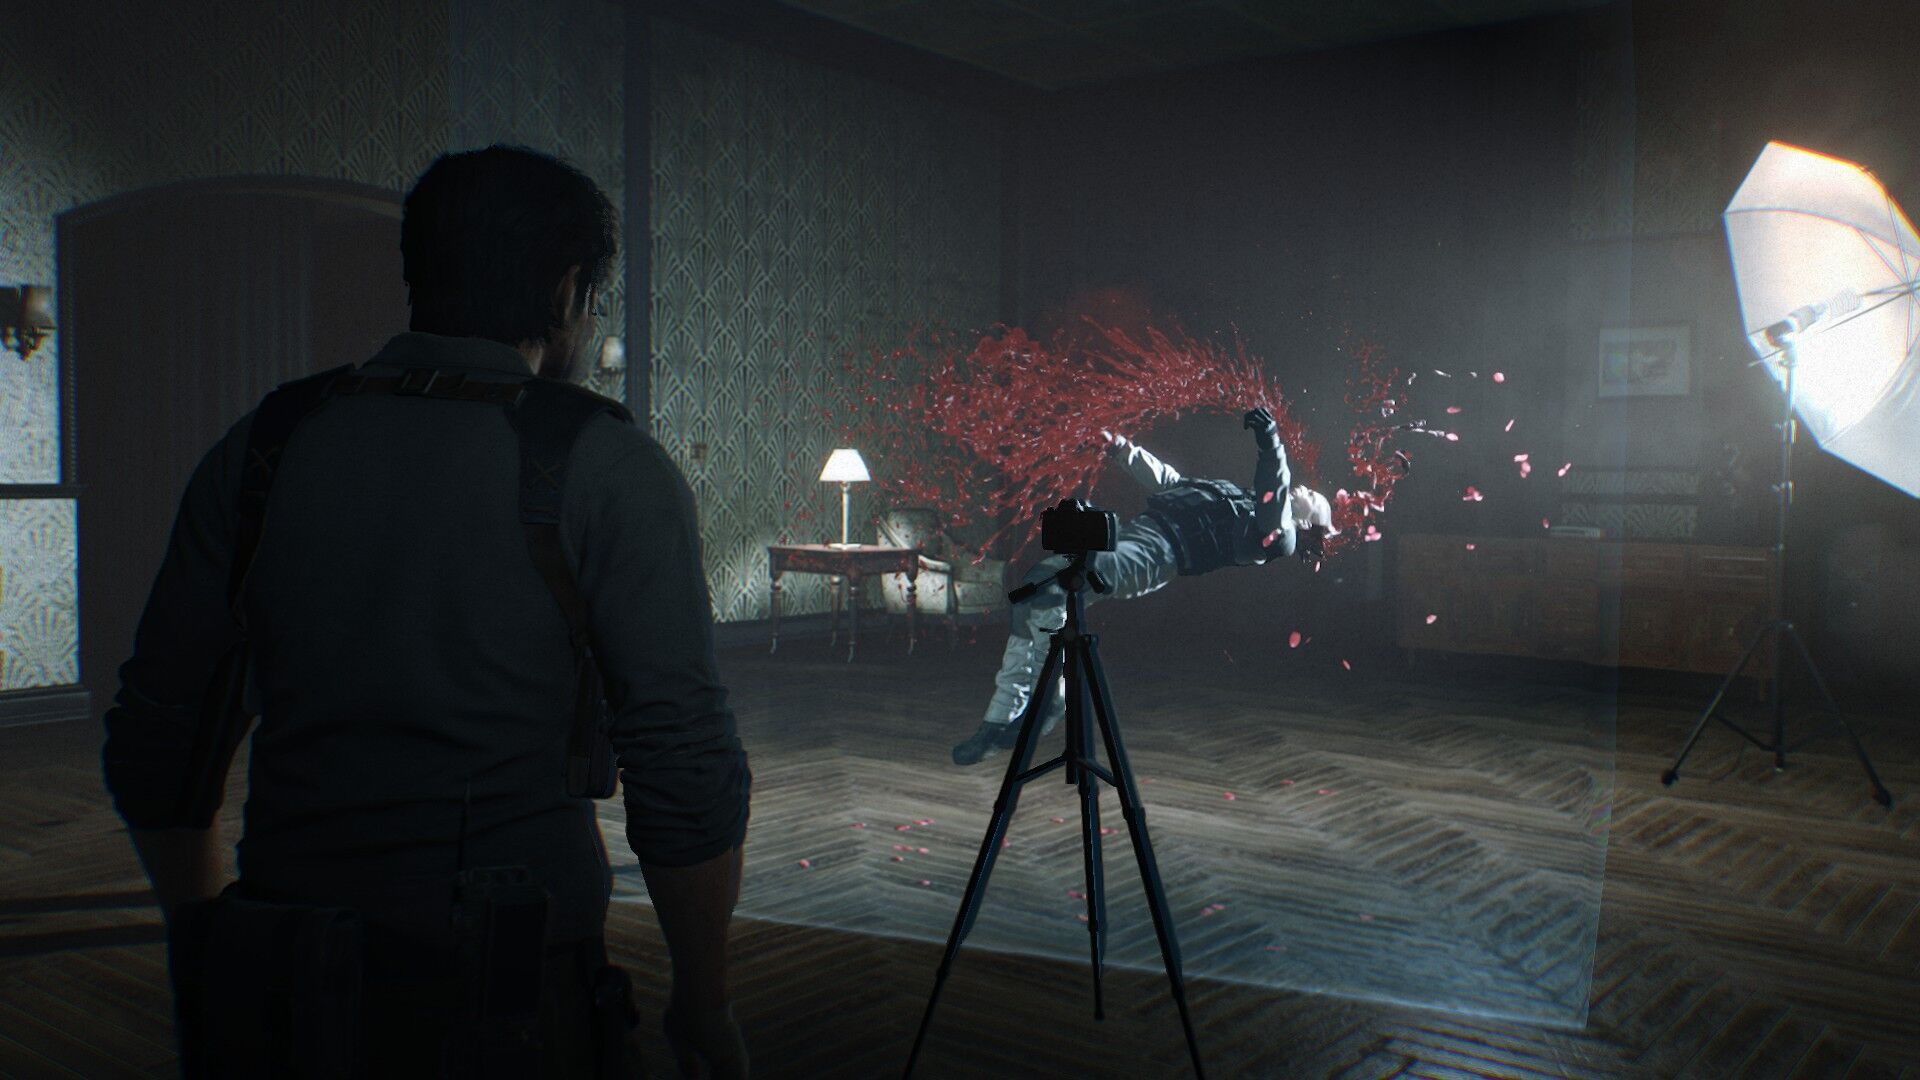 2017 The Evil Within 2 Full Hd Wallpaper: The Evil Within 2 Burns Its Way Onto Our Best PS4 Games List